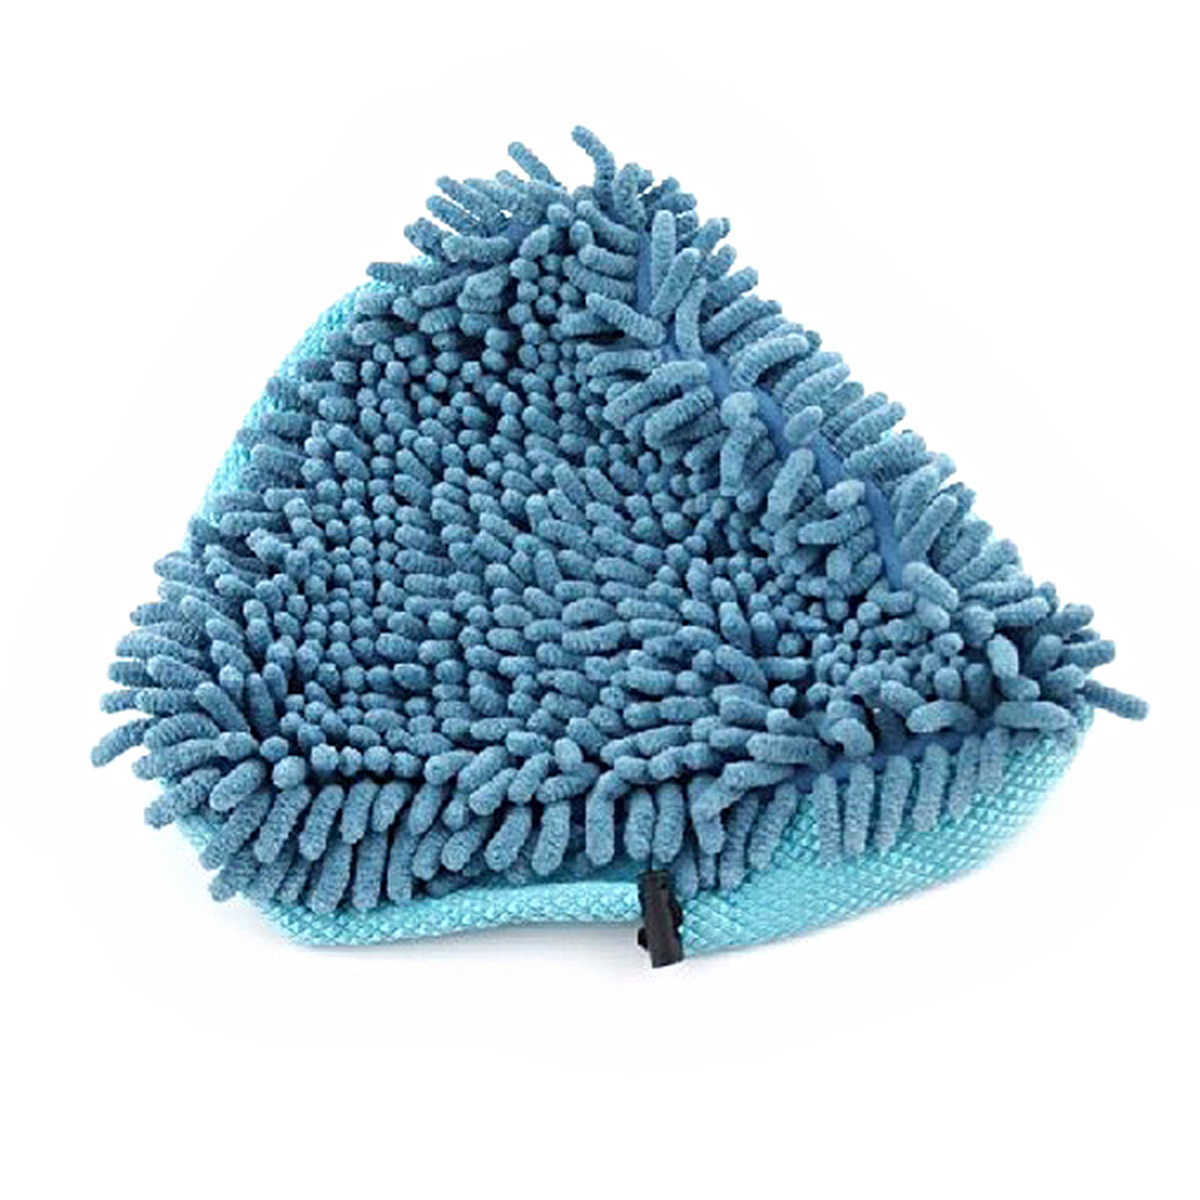 3pcs Replacement Microfiber Cloth Washable Steam Mop Household Cleaning Tools for H2O Mop X5 /Vax X2 /Bionaire Steam Mop (Blue)(China)